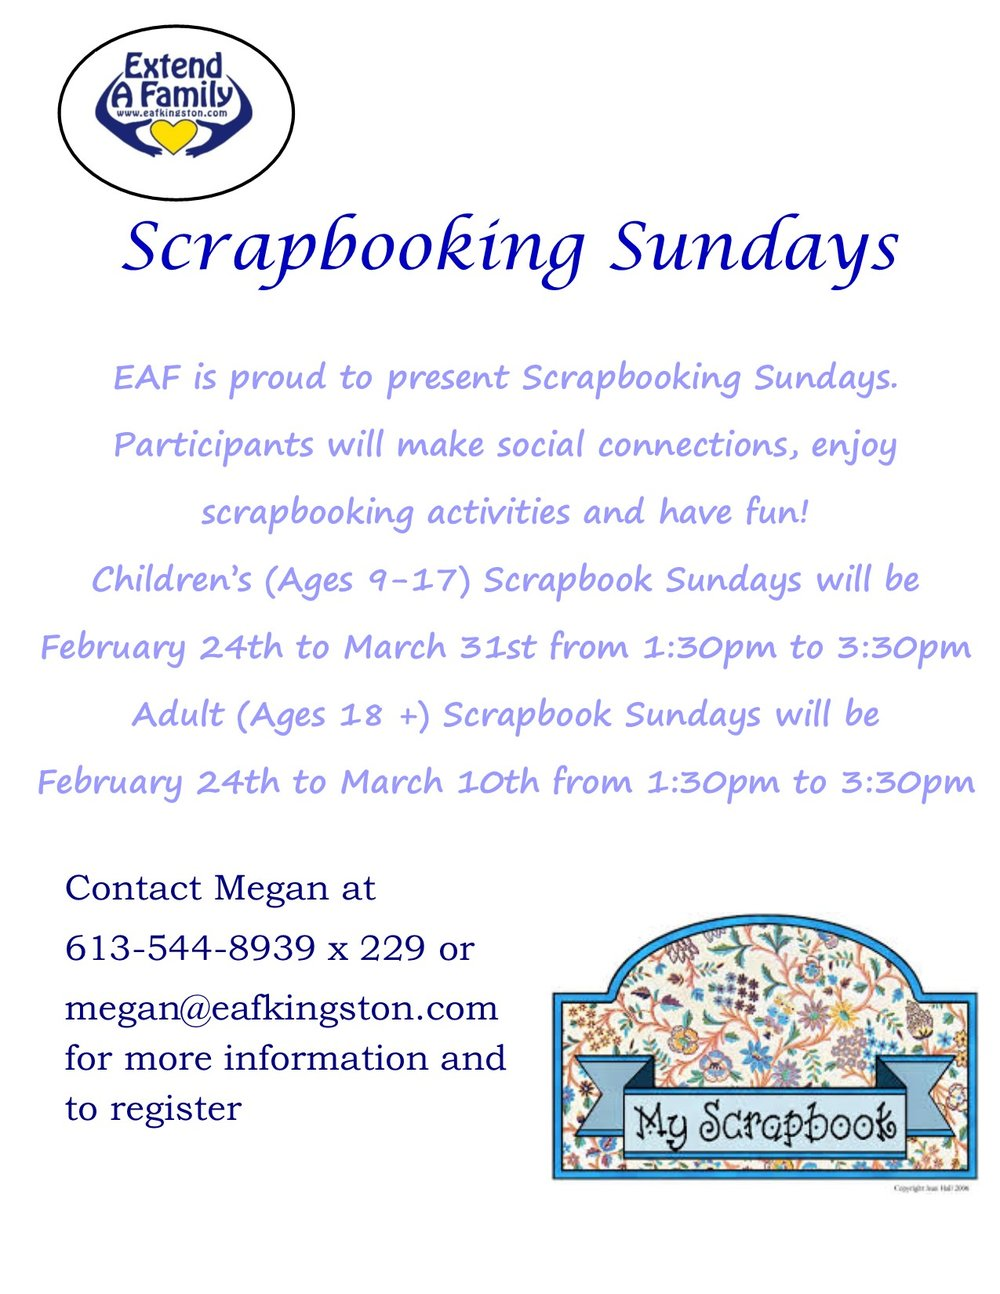 Scrapbooking Sundays — Extend-A-Family Kingston